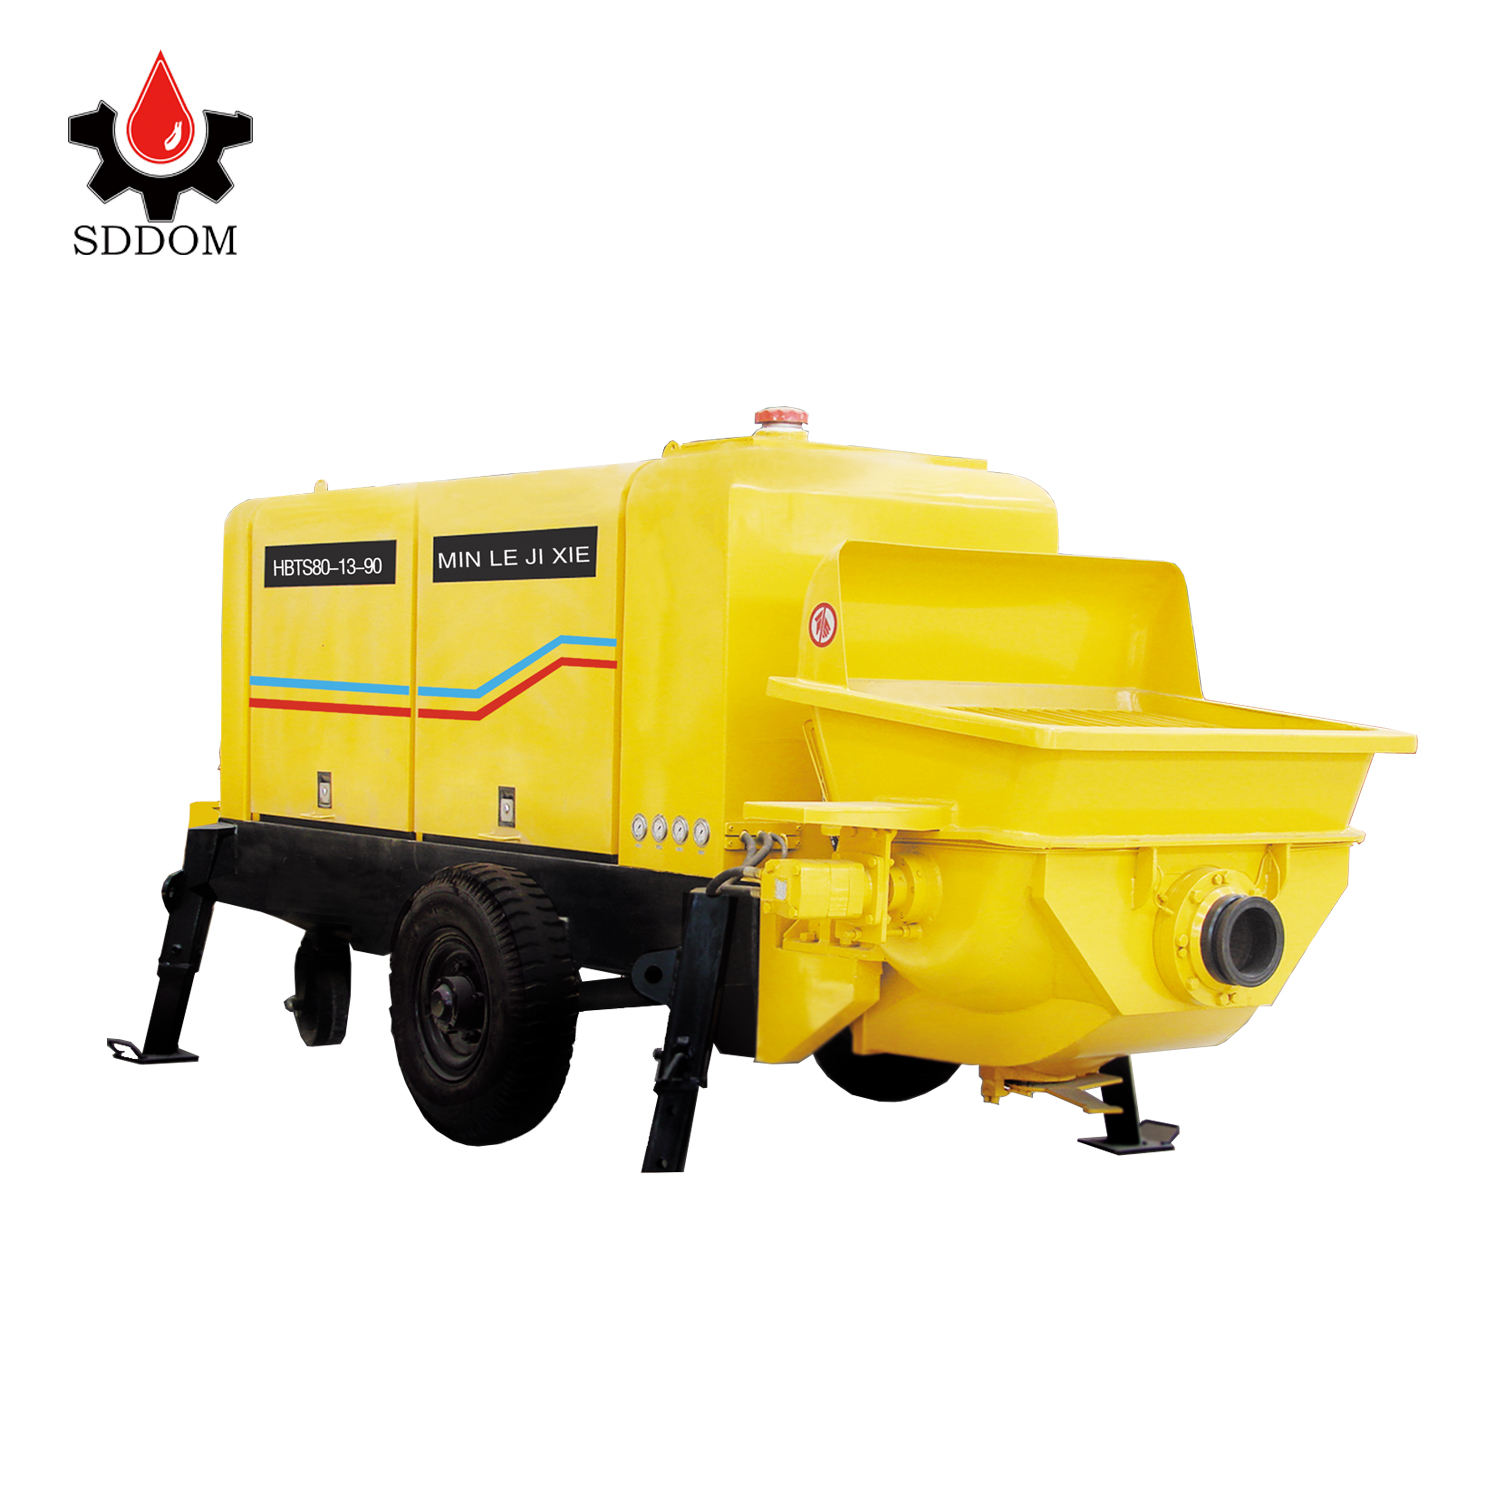 China fornecedor <span class=keywords><strong>do</strong></span> motor diesel elétrico mini máquina pequena bomba <span class=keywords><strong>de</strong></span> <span class=keywords><strong>concreto</strong></span> <span class=keywords><strong>do</strong></span> <span class=keywords><strong>caminhão</strong></span> bomba <span class=keywords><strong>de</strong></span> <span class=keywords><strong>concreto</strong></span>